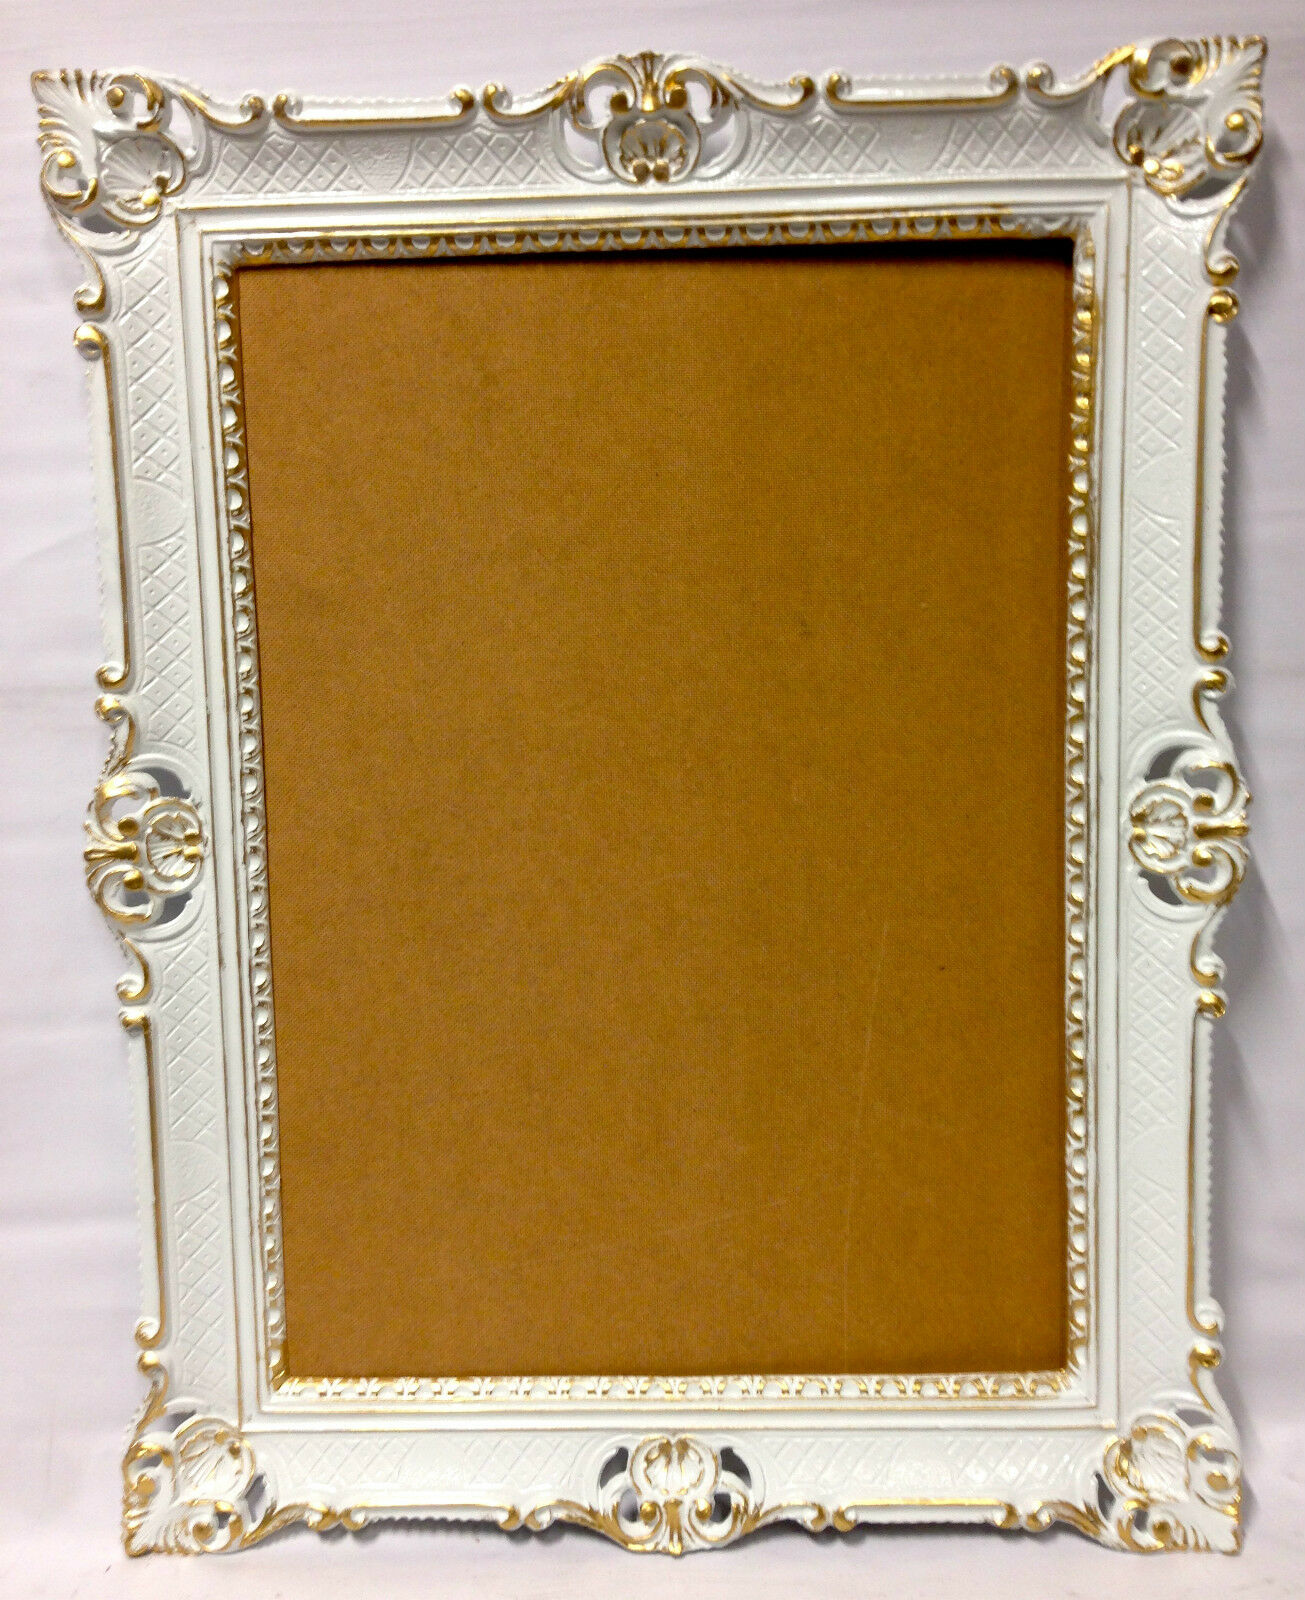 picture frame white gold antique retro vintage poster 90x70 large ebay. Black Bedroom Furniture Sets. Home Design Ideas